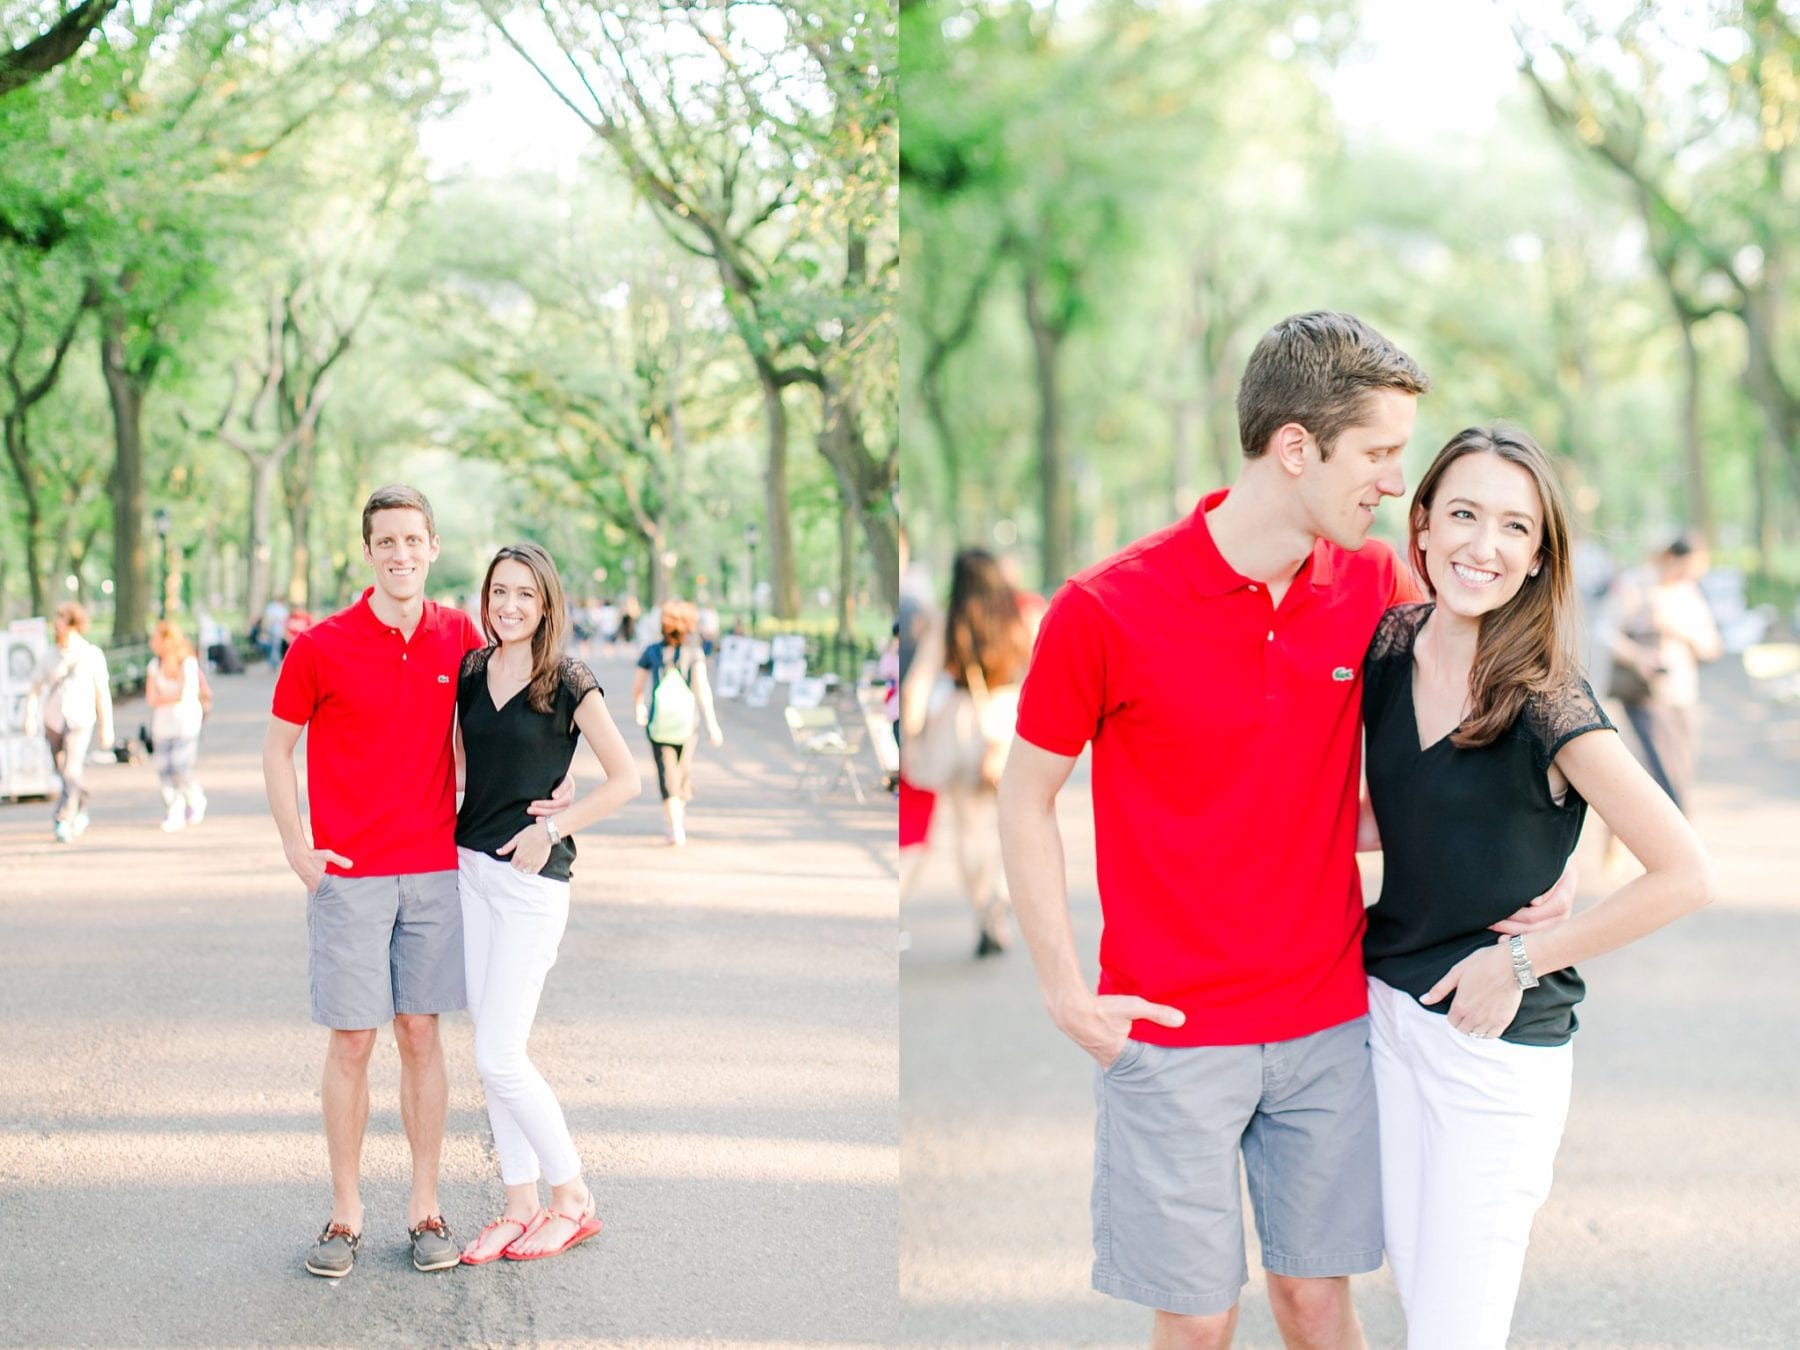 West Village Central Park Engagement Photos NYC Wedding Photographer Megan Kelsey Photography-218.jpg